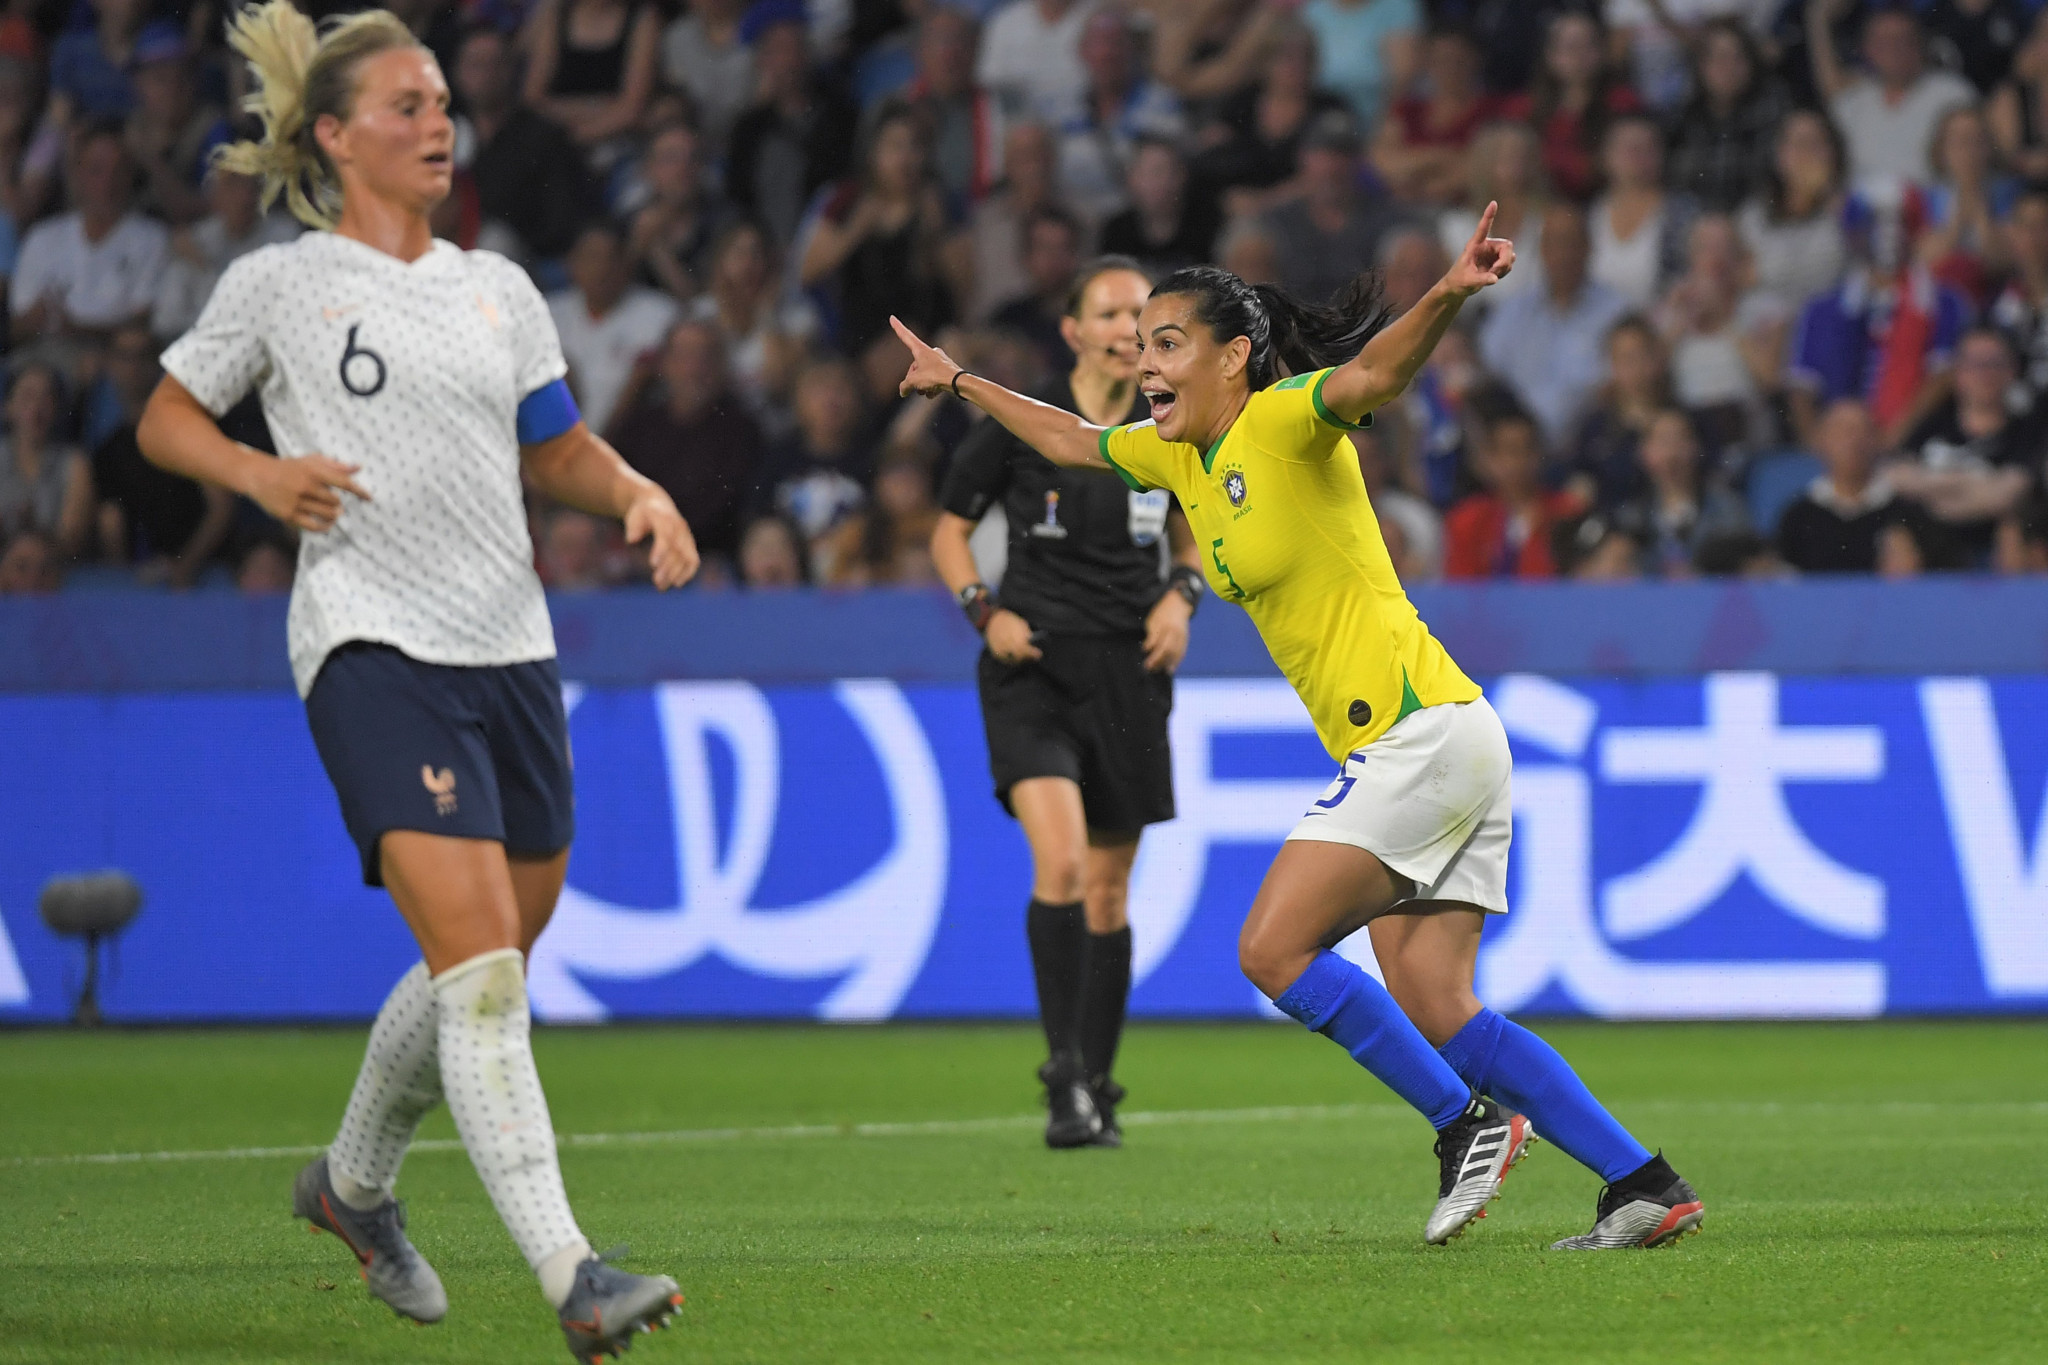 Brazil equalised when Thaisa's driven finish was allowed following a VAR review © Getty Images